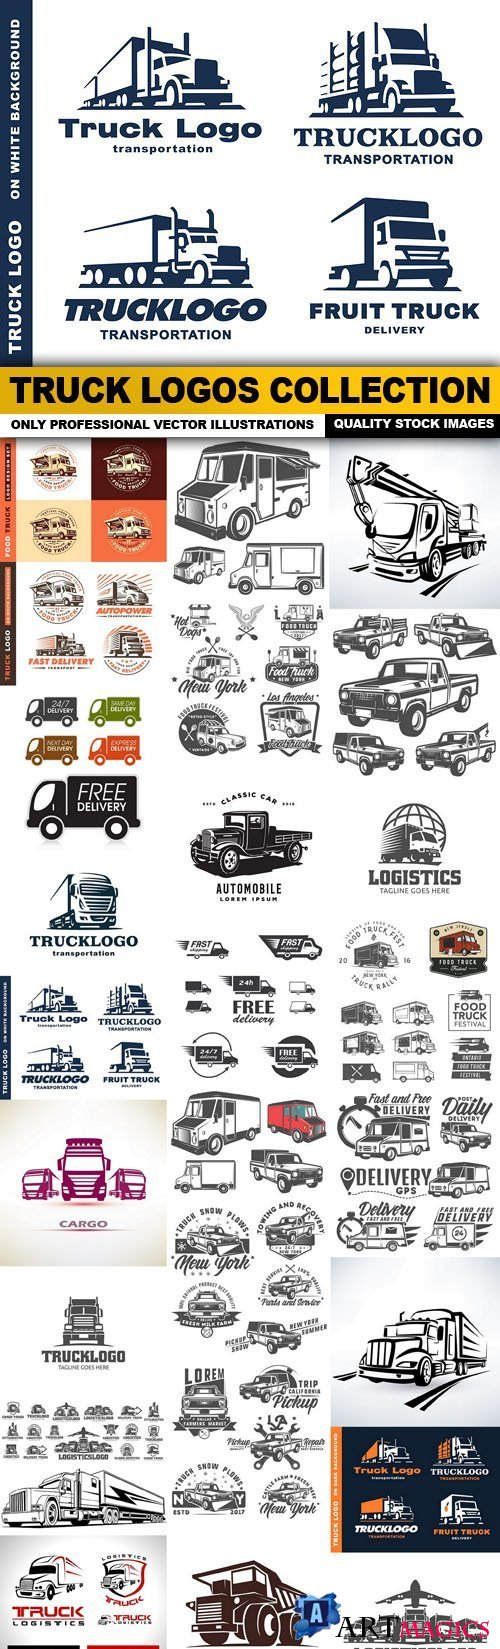 Truck Logos Collection - 25 Vector